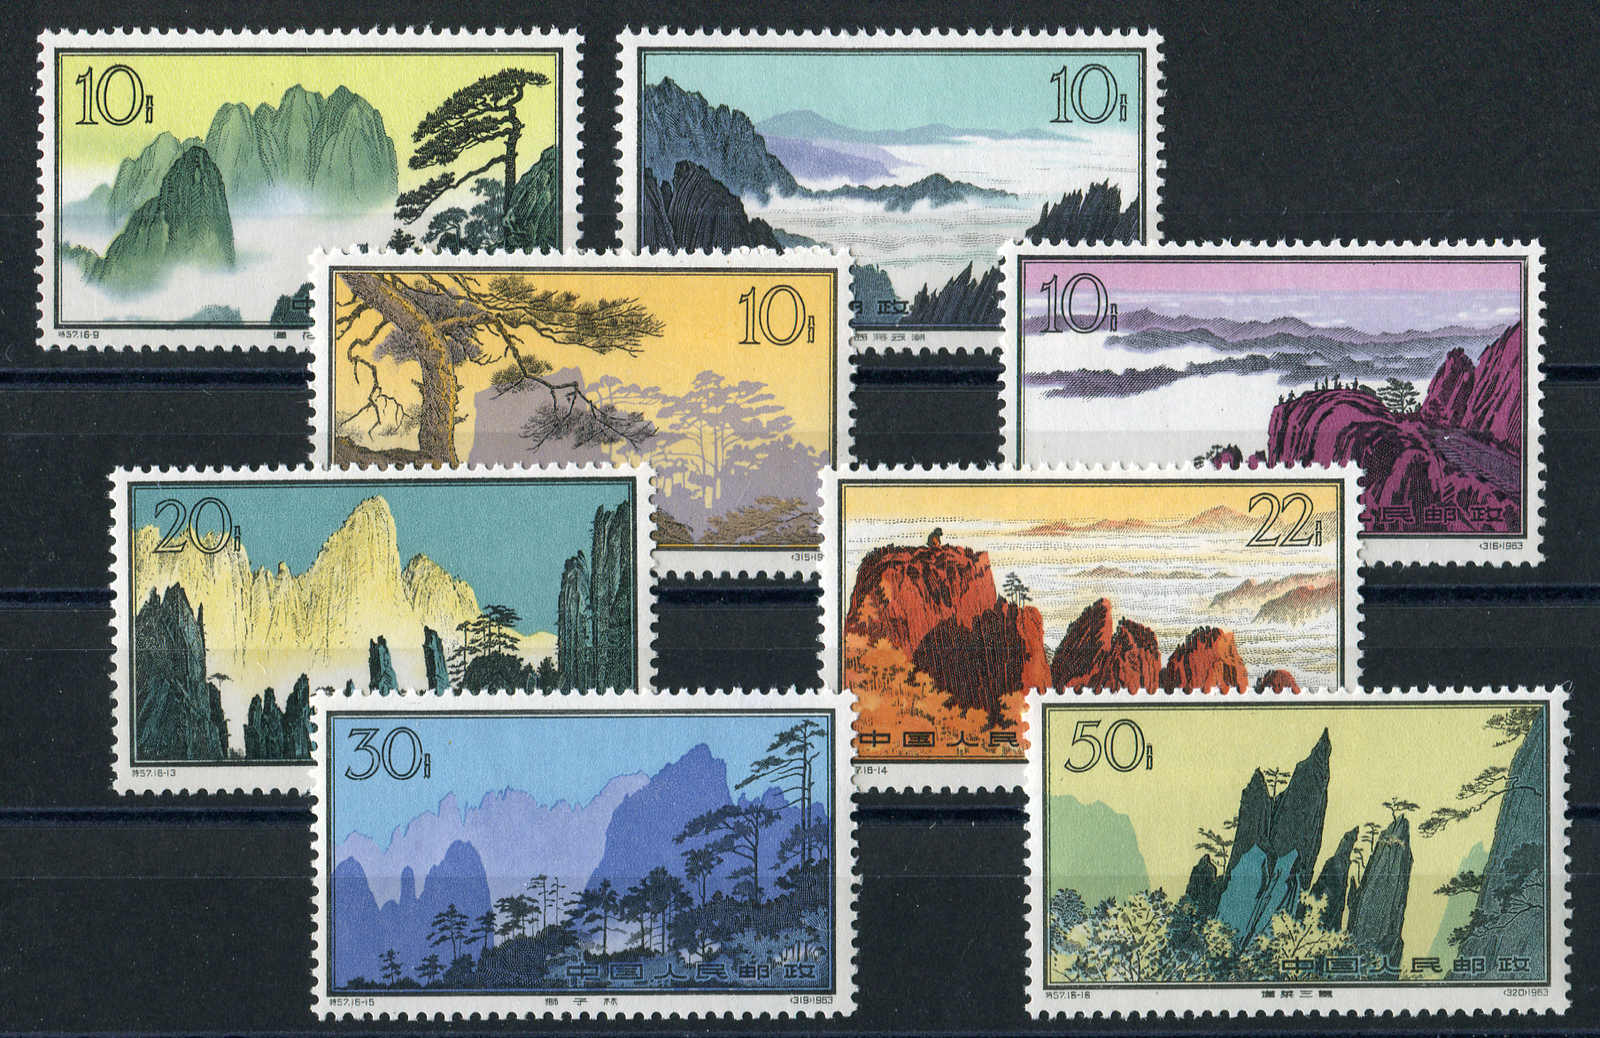 Lot 4260 - Worldwide A-Z People's Republic of China -  Auktionshaus Schlegel 26 Public Auction